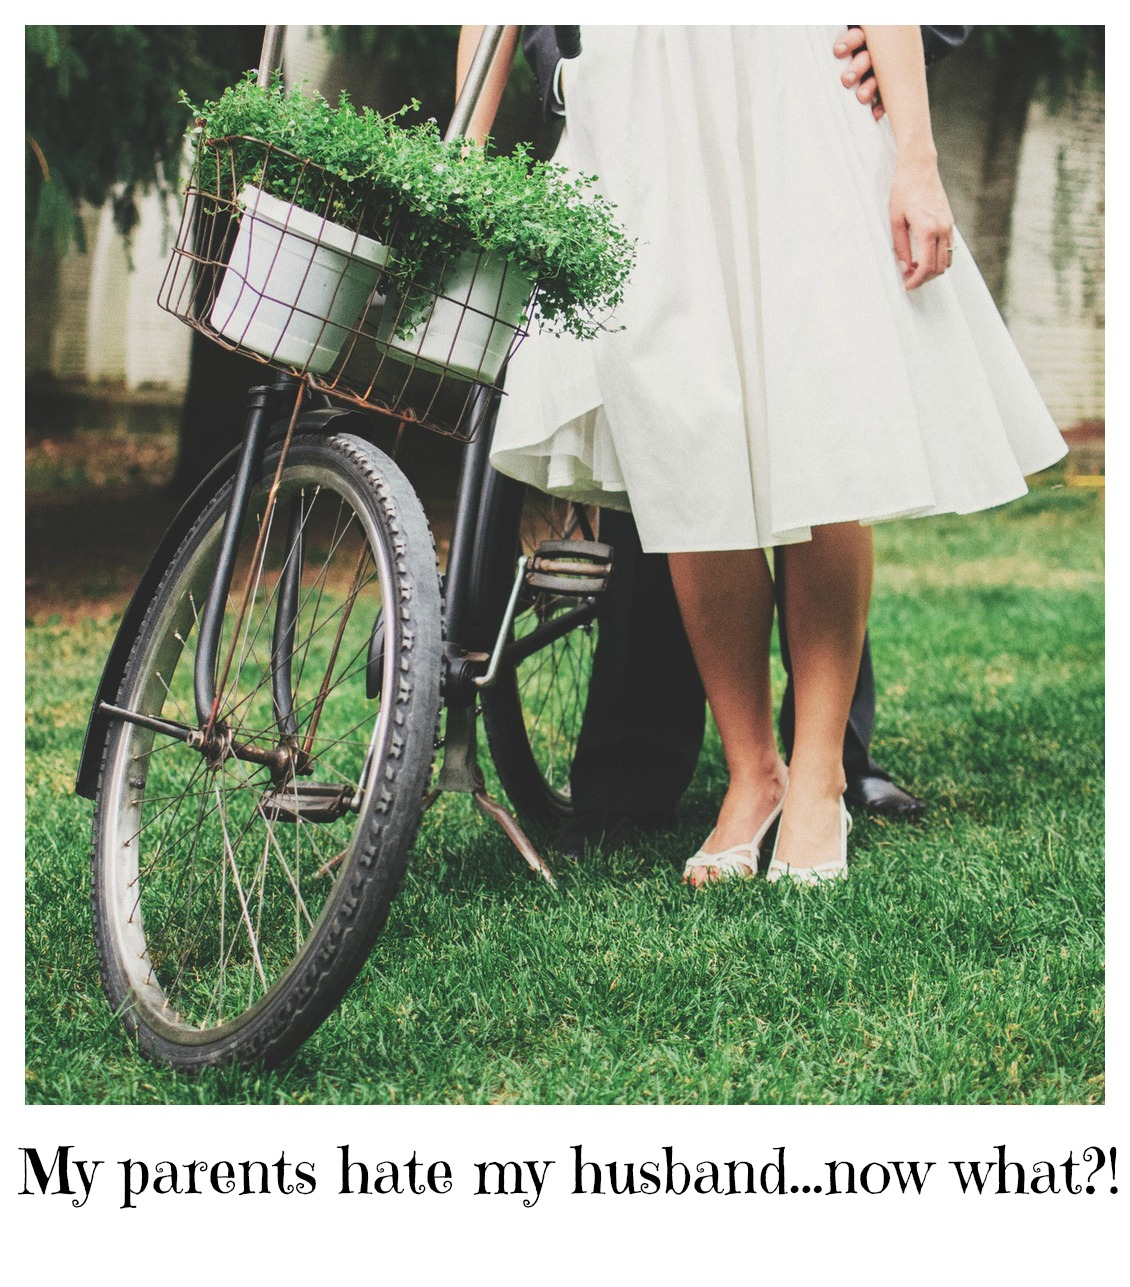 My parents hate my husband...now what?!